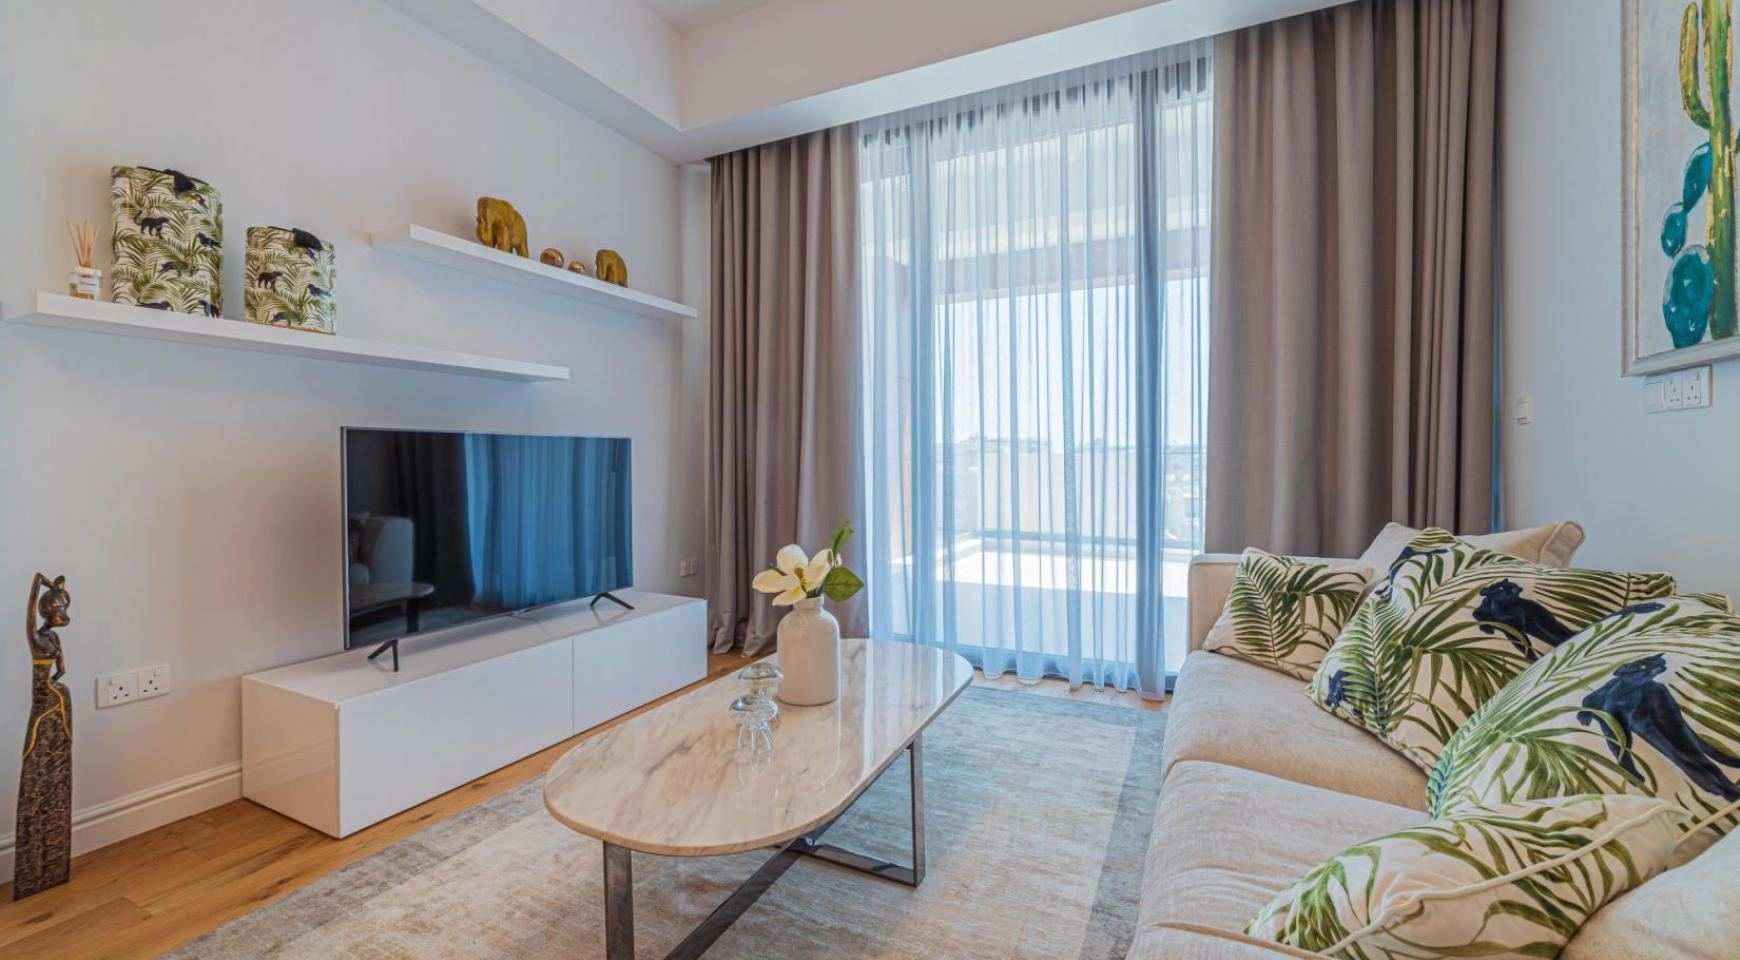 Hortensia Residence, Apt. 201. 2 Bedroom Apartment within a New Complex near the Sea  - 49